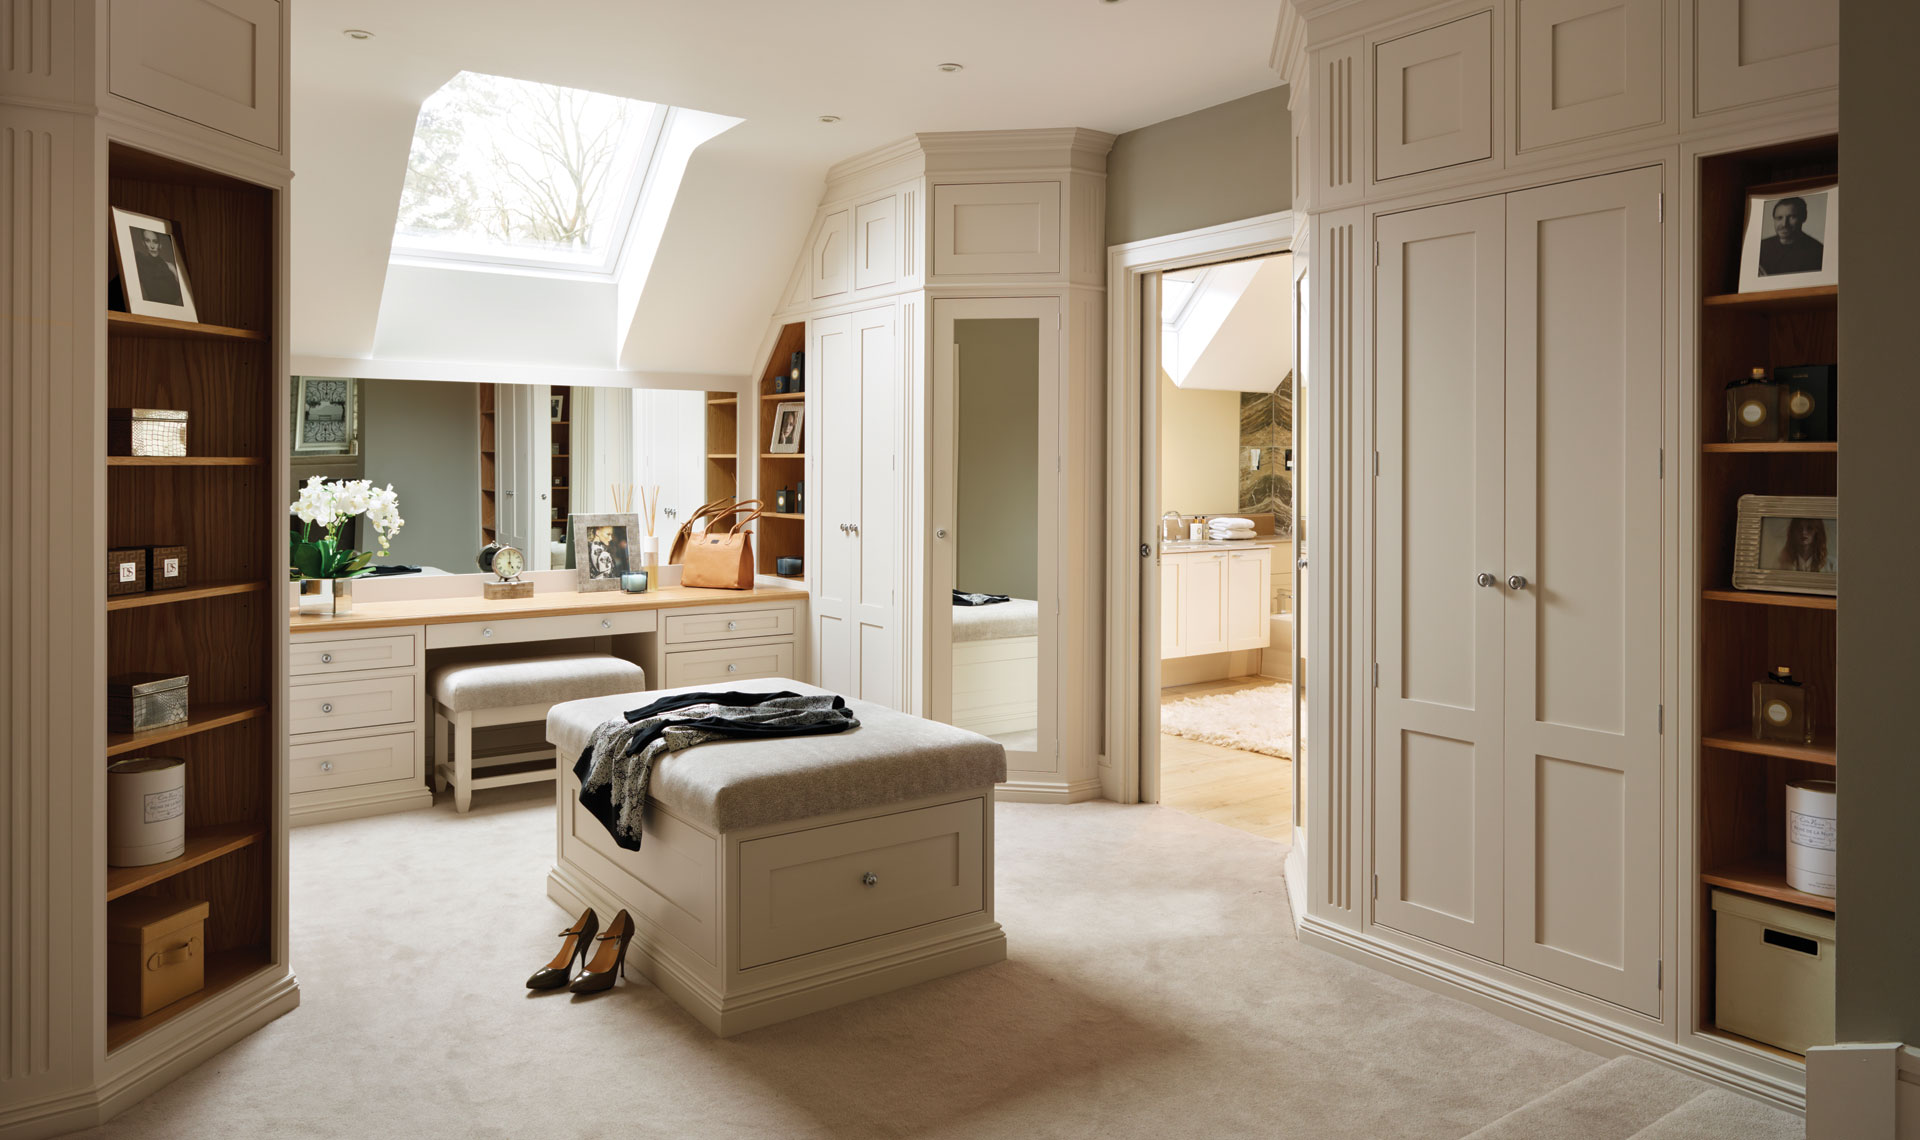 linda joseph interiors is a family business that offers a